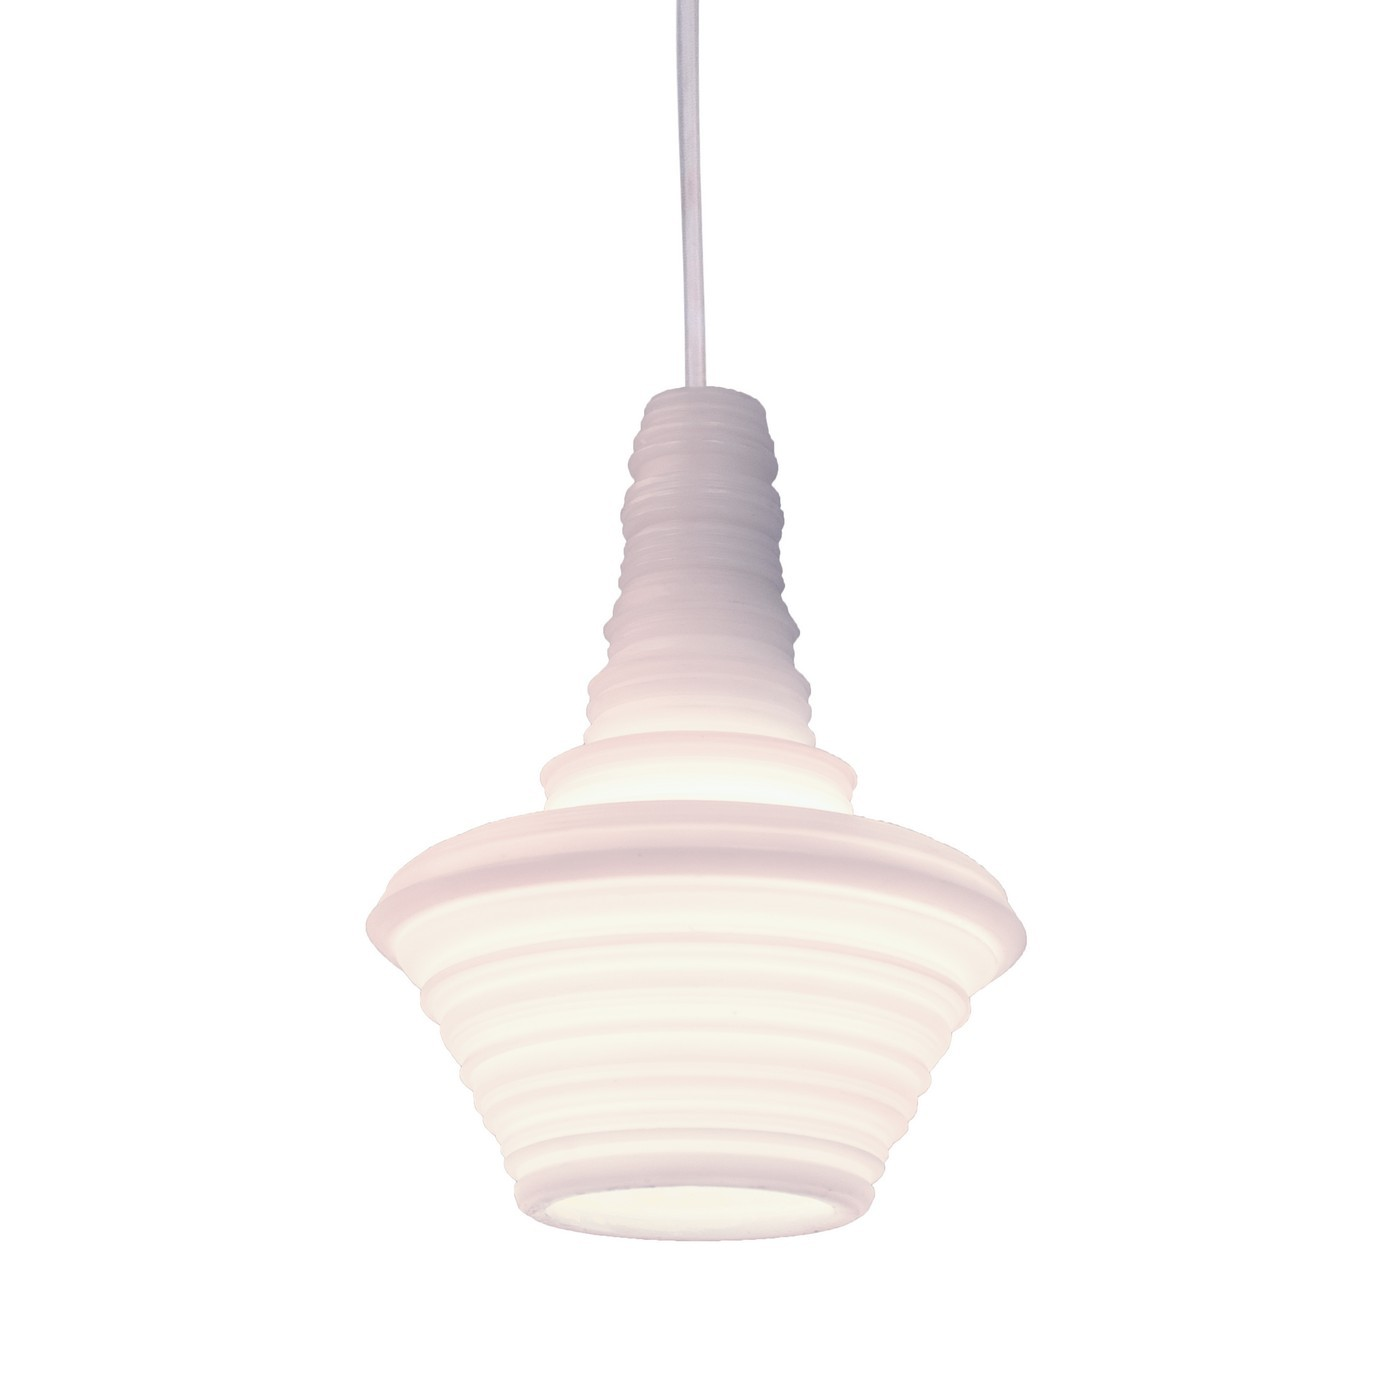 Stupa Small Pendant Lamp  Innermost  Design Is This